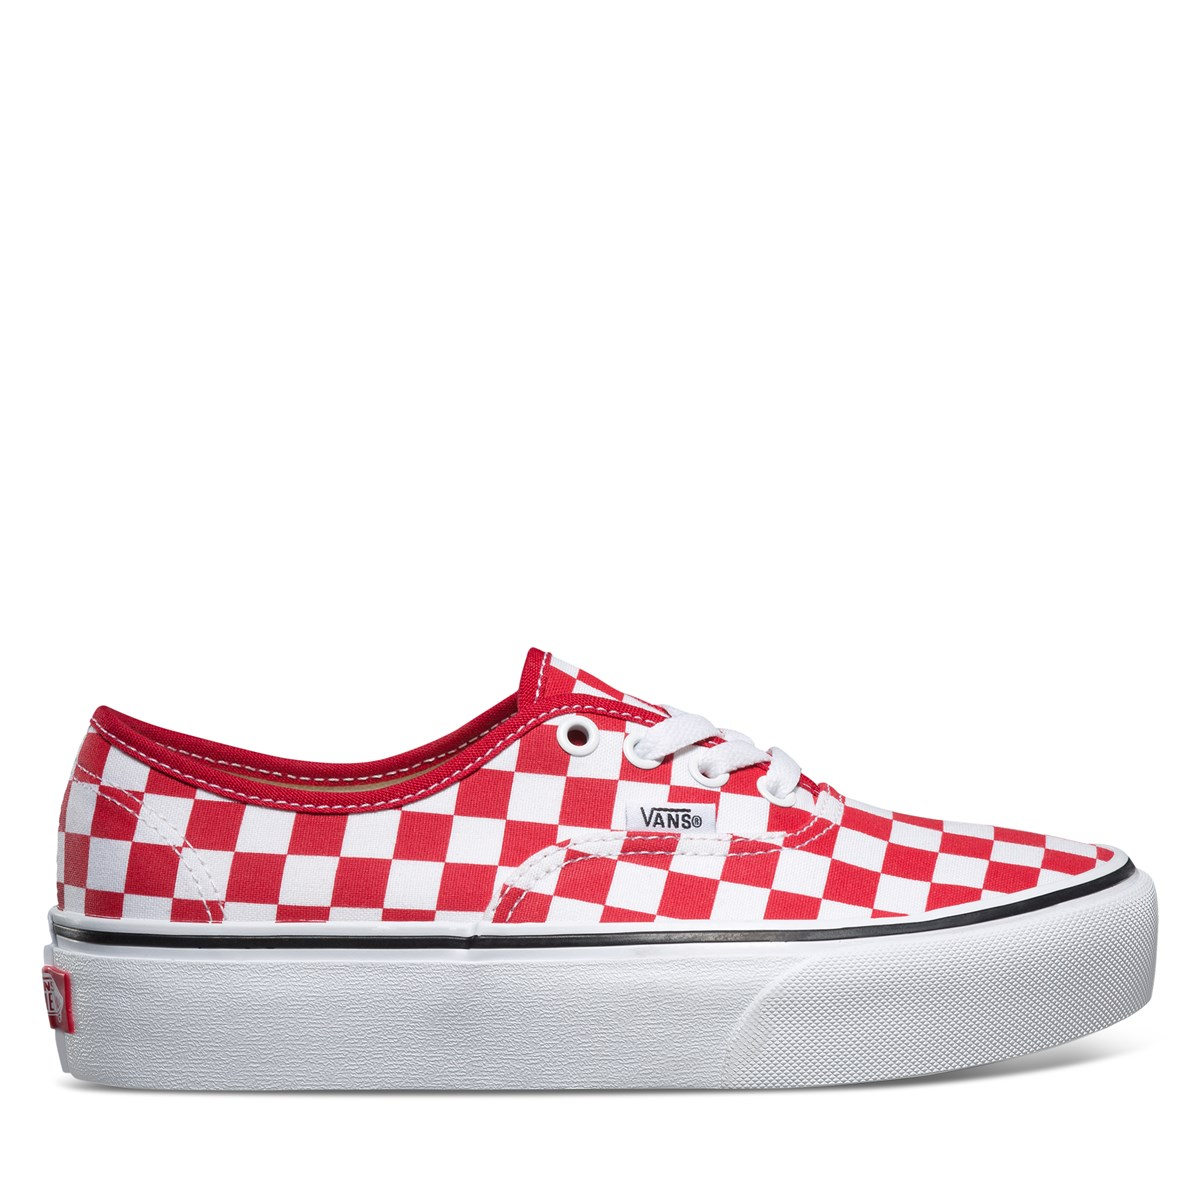 2813fbb3ba6093 Women s Authentic Platform 2.0 Sneaker in Red Checkerboard. Previous.  default view ...